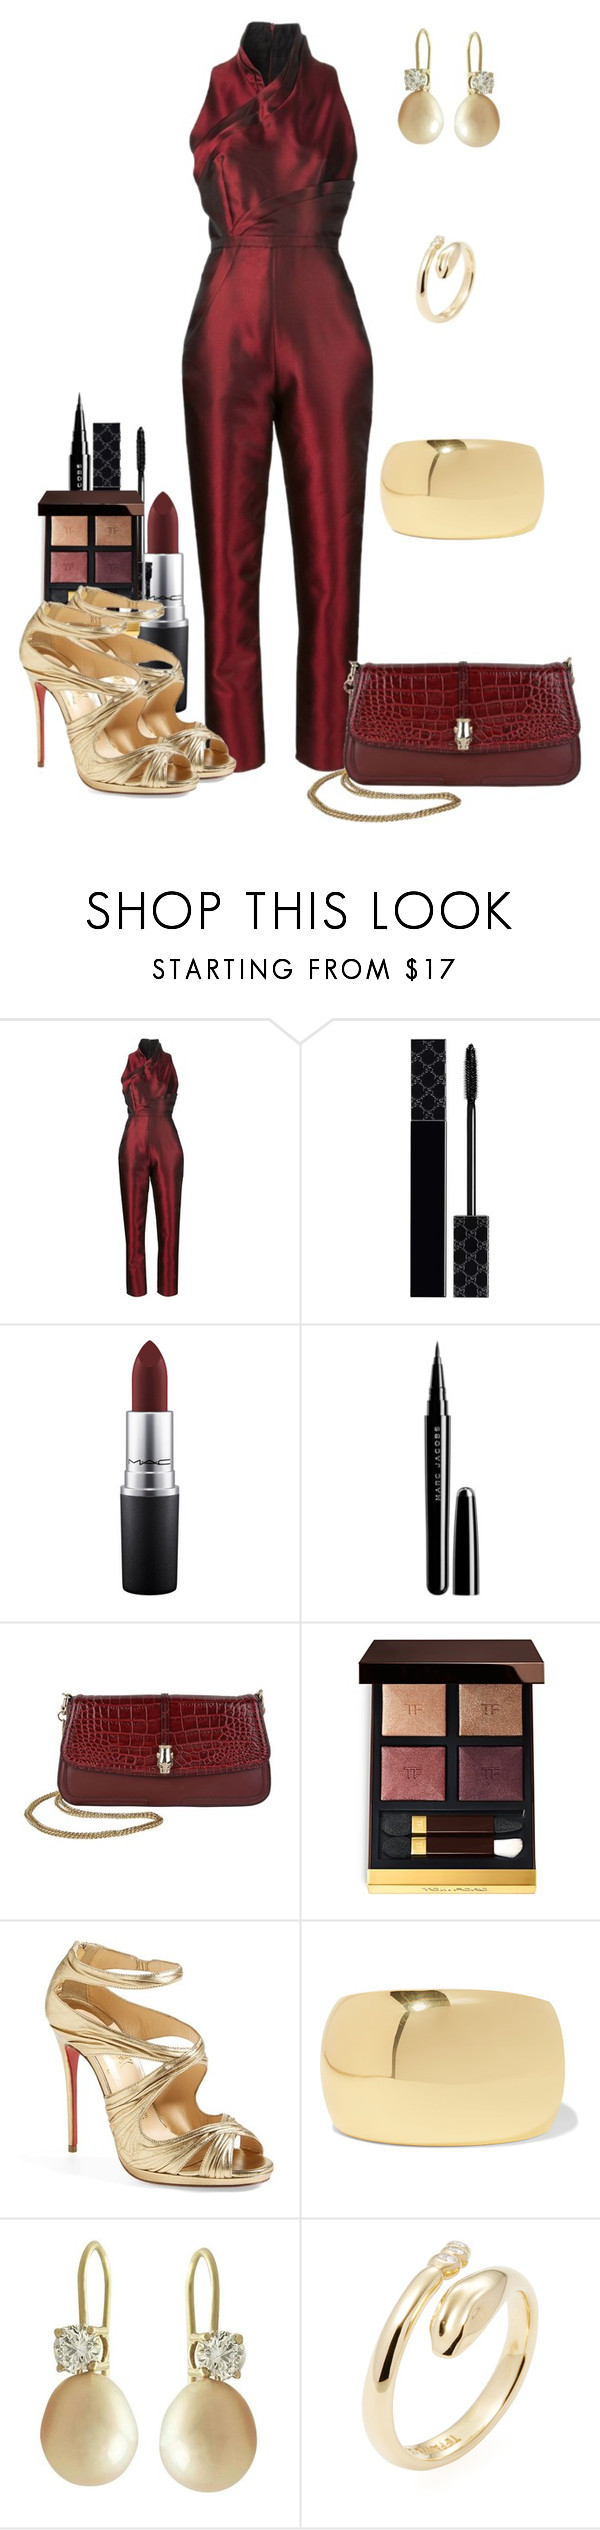 """""""Untitled #407"""" by fasttrack2fashion ❤ liked on Polyvore featuring Iris van Herpen, Gucci, MAC Cosmetics, Marc Jacobs, Roberto Cavalli, Tom Ford, Christian Louboutin, Kenneth Jay Lane and Tiffany & Co."""